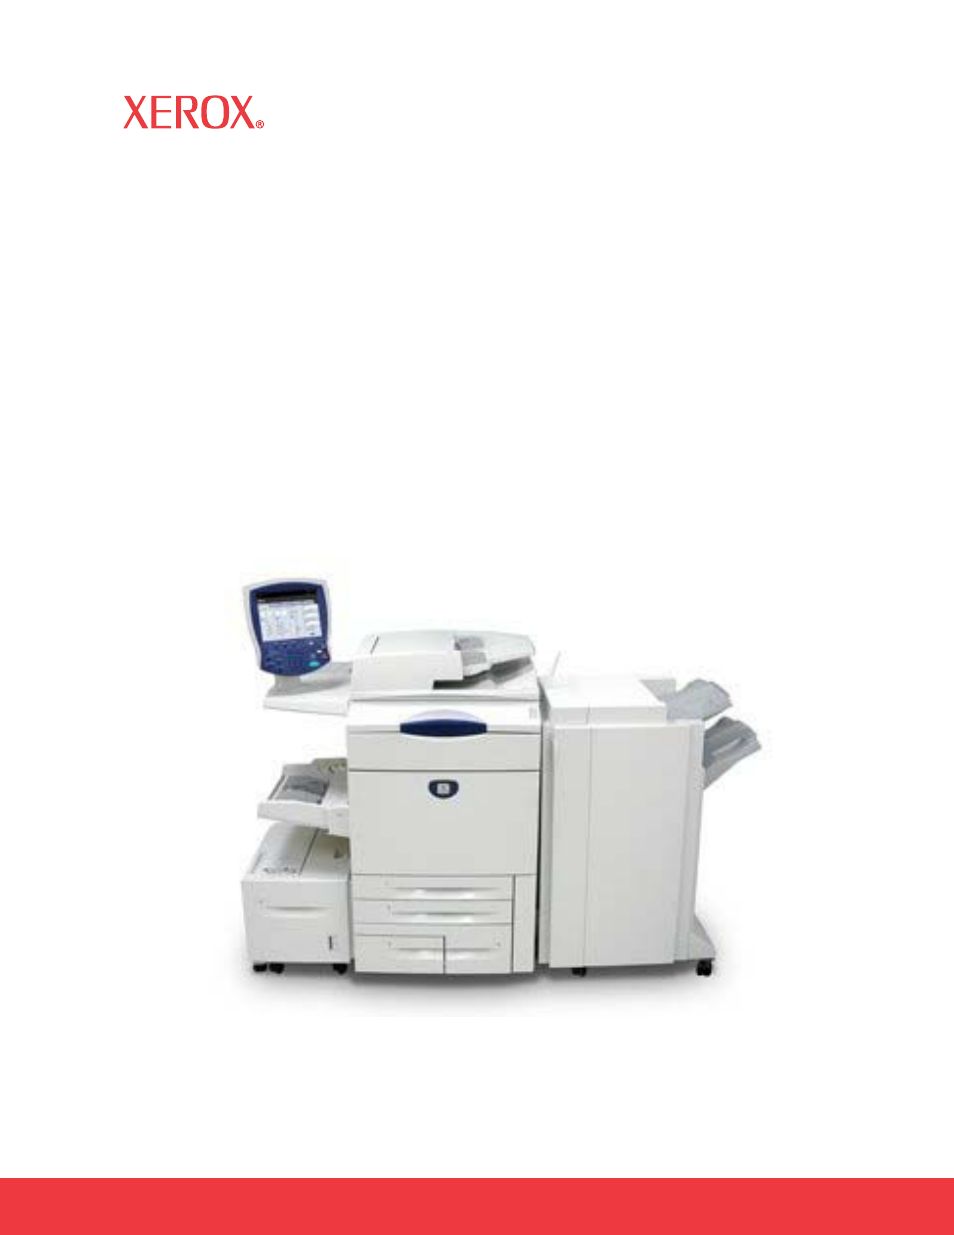 Xerox 7675 User Manual | 262 pages | Also for: WorkCentre 7655-7665-7675-3712,  WorkCentre 7655-7665-7675-5890, WorkCentre 7655-7665-7675-2524, WorkCentre  ...